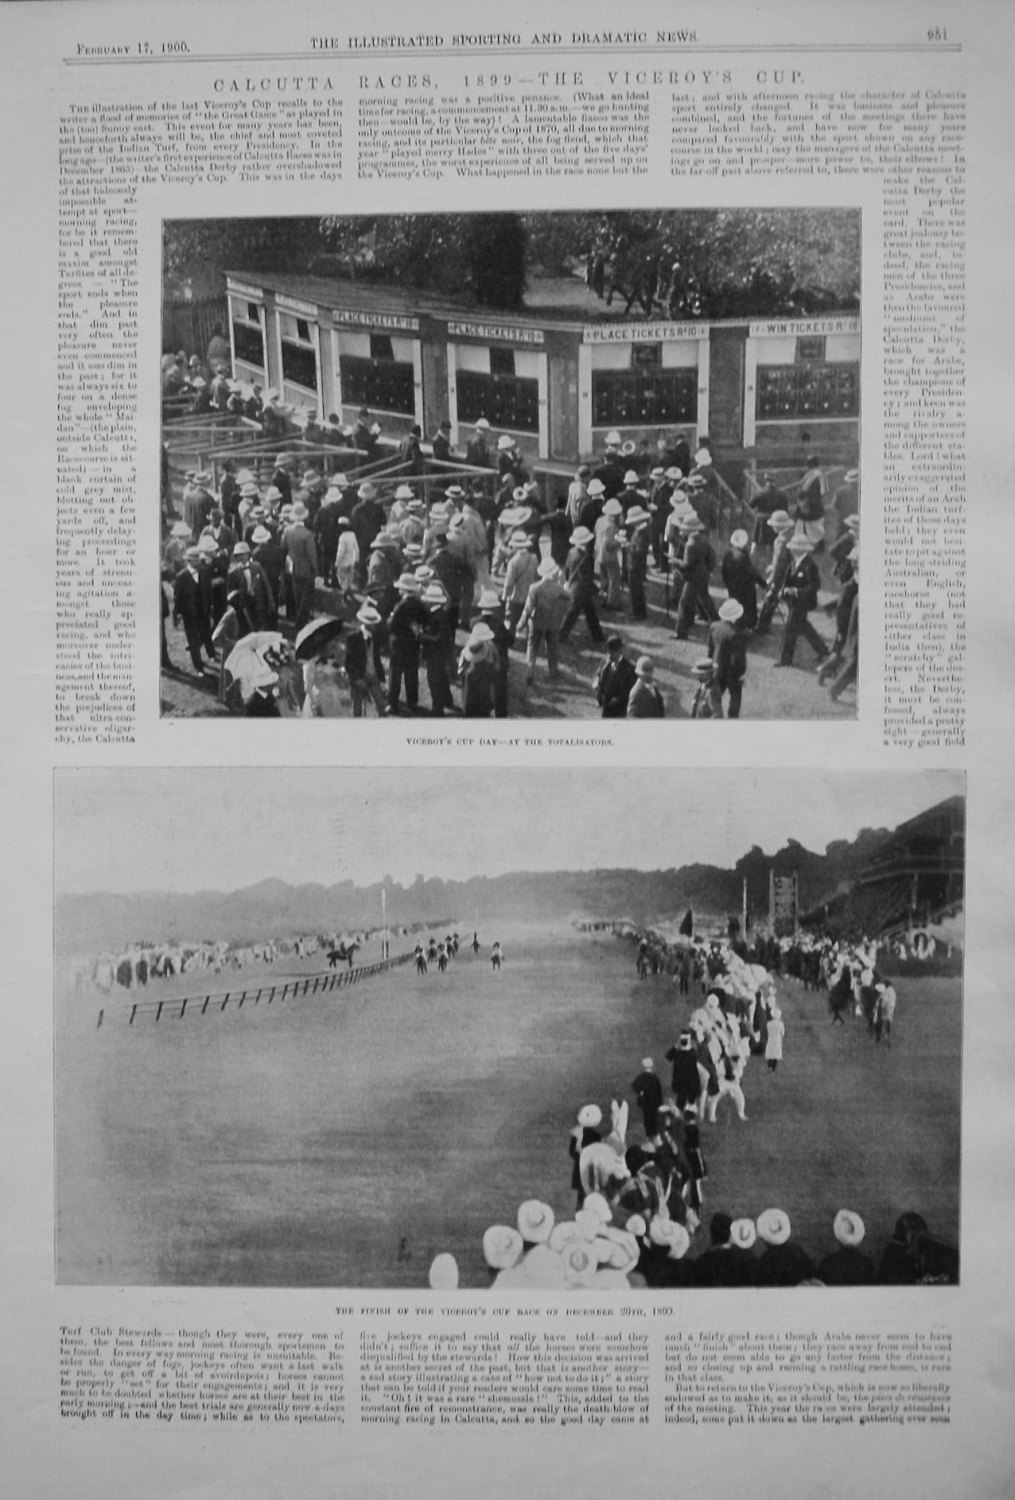 Calcutta Races, 1899 - The Viceroy's Cup.